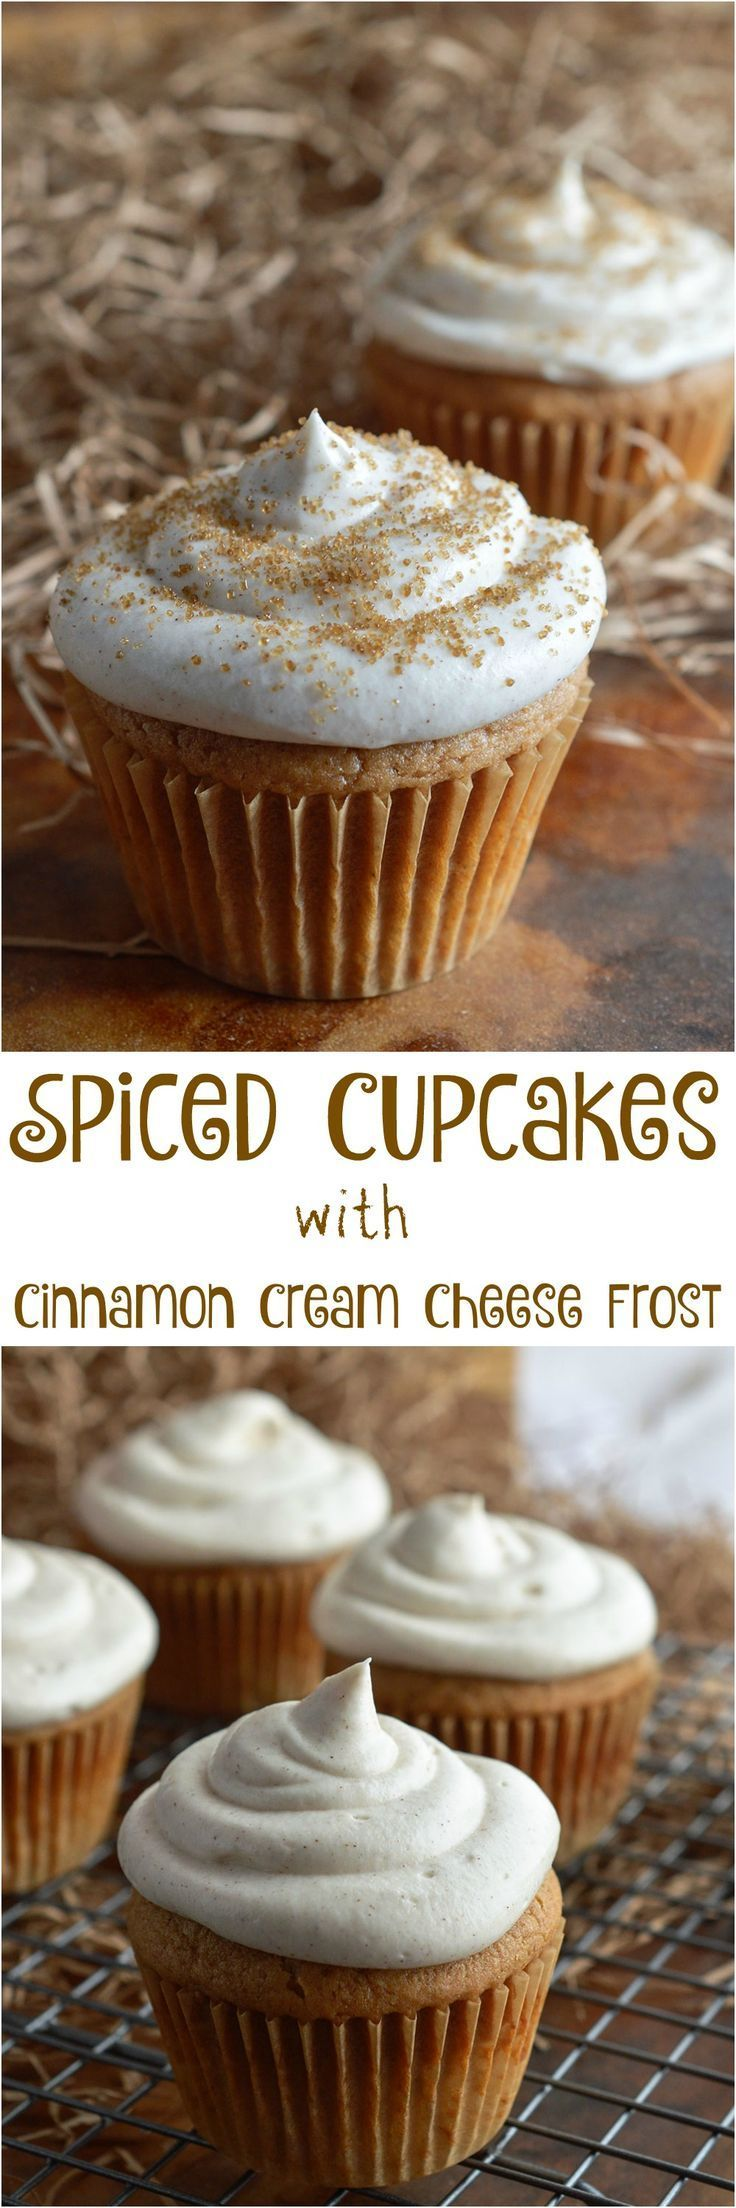 Spiced Cupcakes with Cinnamon Cream Cheese Frosting are the perfect Fall dessert! This easy recipe is great for holiday parties and meals. A very special secret ingredients adds a blast of flavor! #cupcakes #holiday wonkywonderful.com